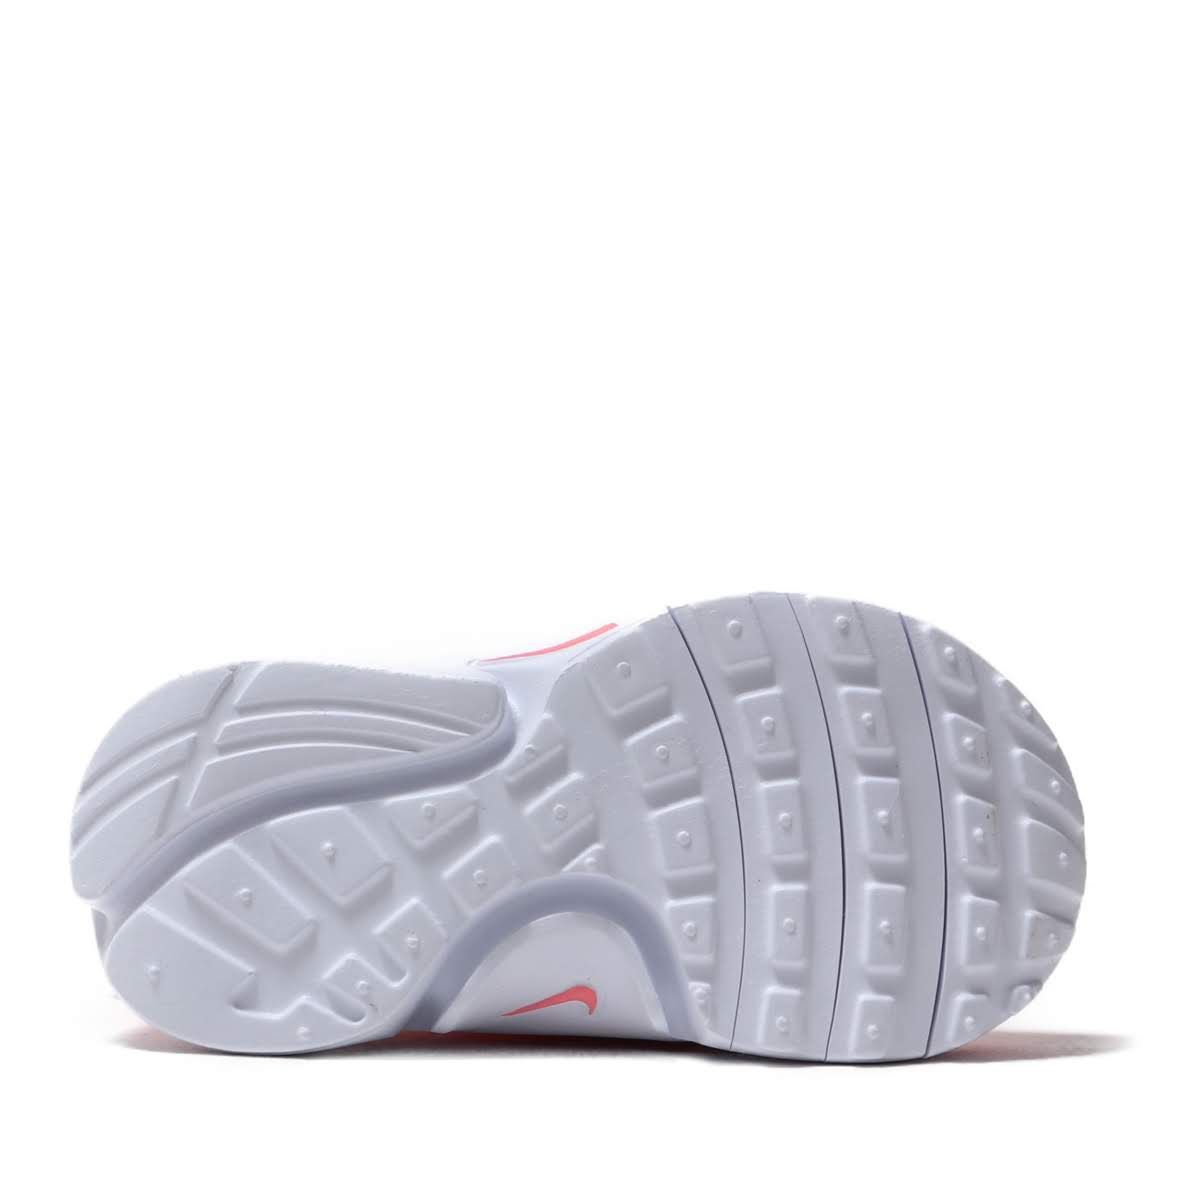 low priced 4a854 4802a NIKE PRESTO EXTREME (TD) (PINK GAZE /PINK GAZE -WHITE) (Nike presto extreme  TD)